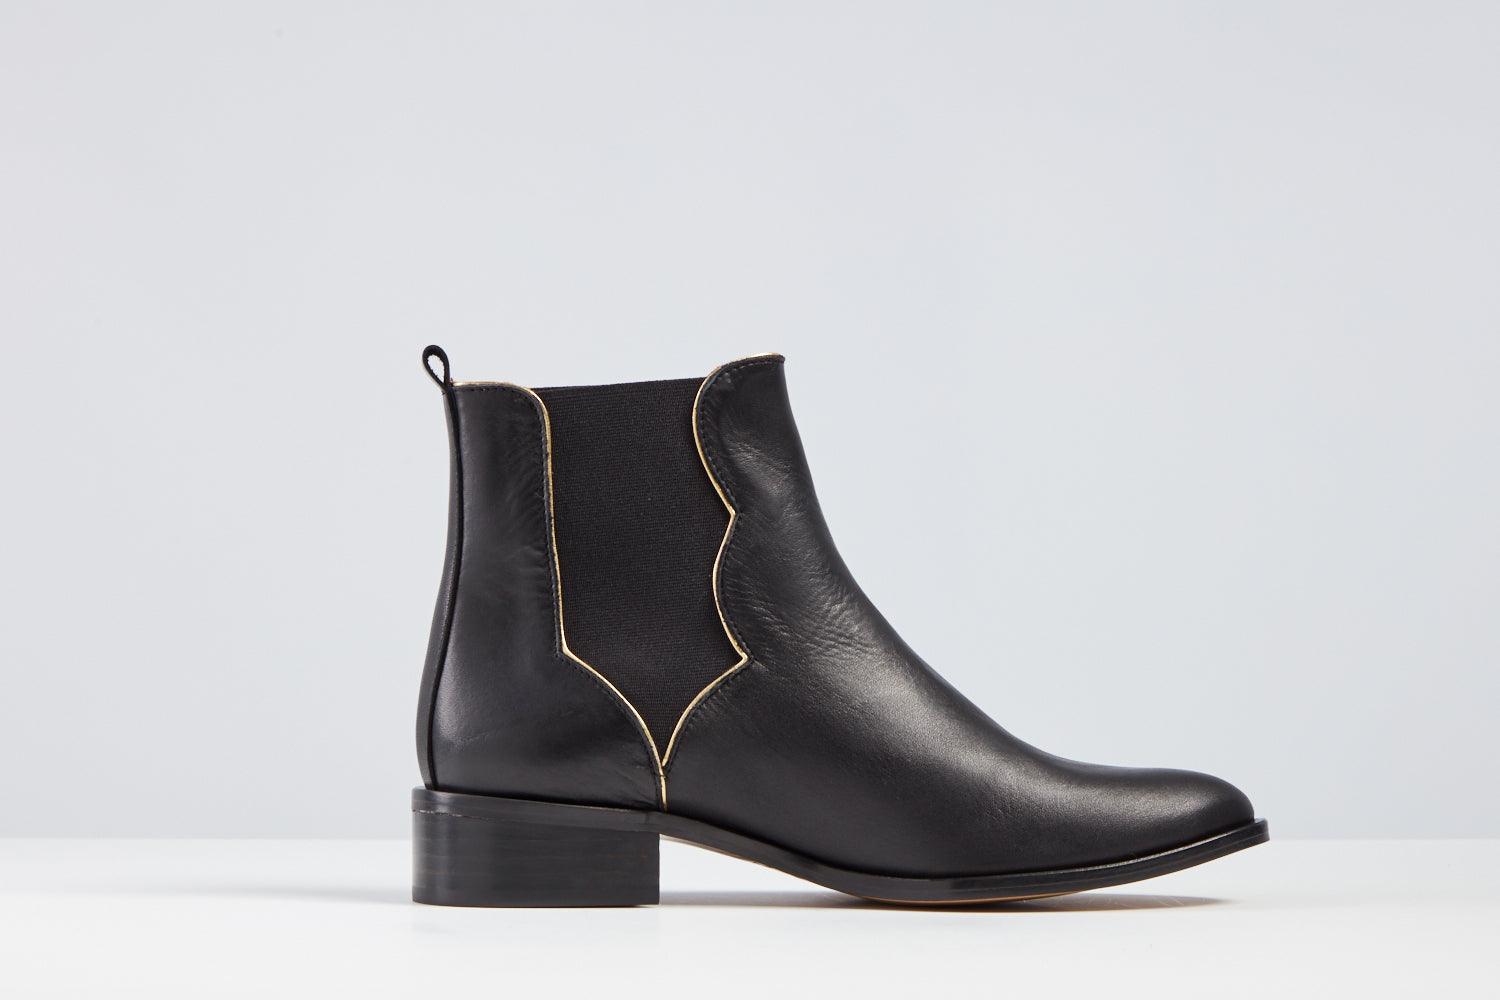 Freja Black Nappa and Gold boot